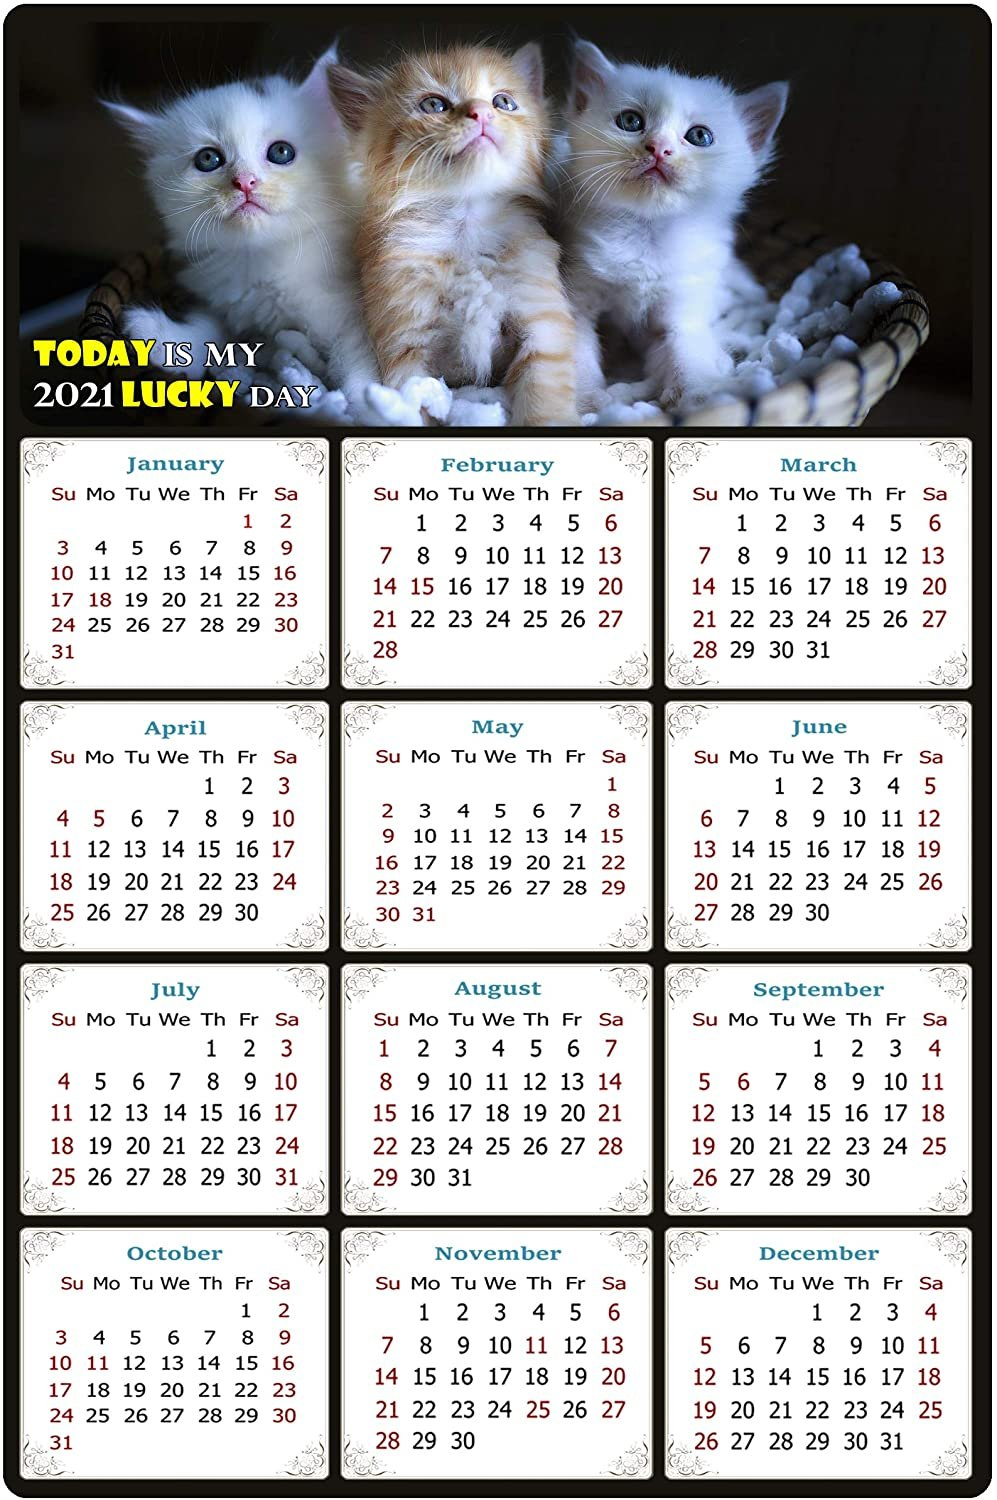 2021 Magnetic Calendar - Calendar Magnets - Today is My Lucky Day - Cat Themed 011 (7 x 10.5)